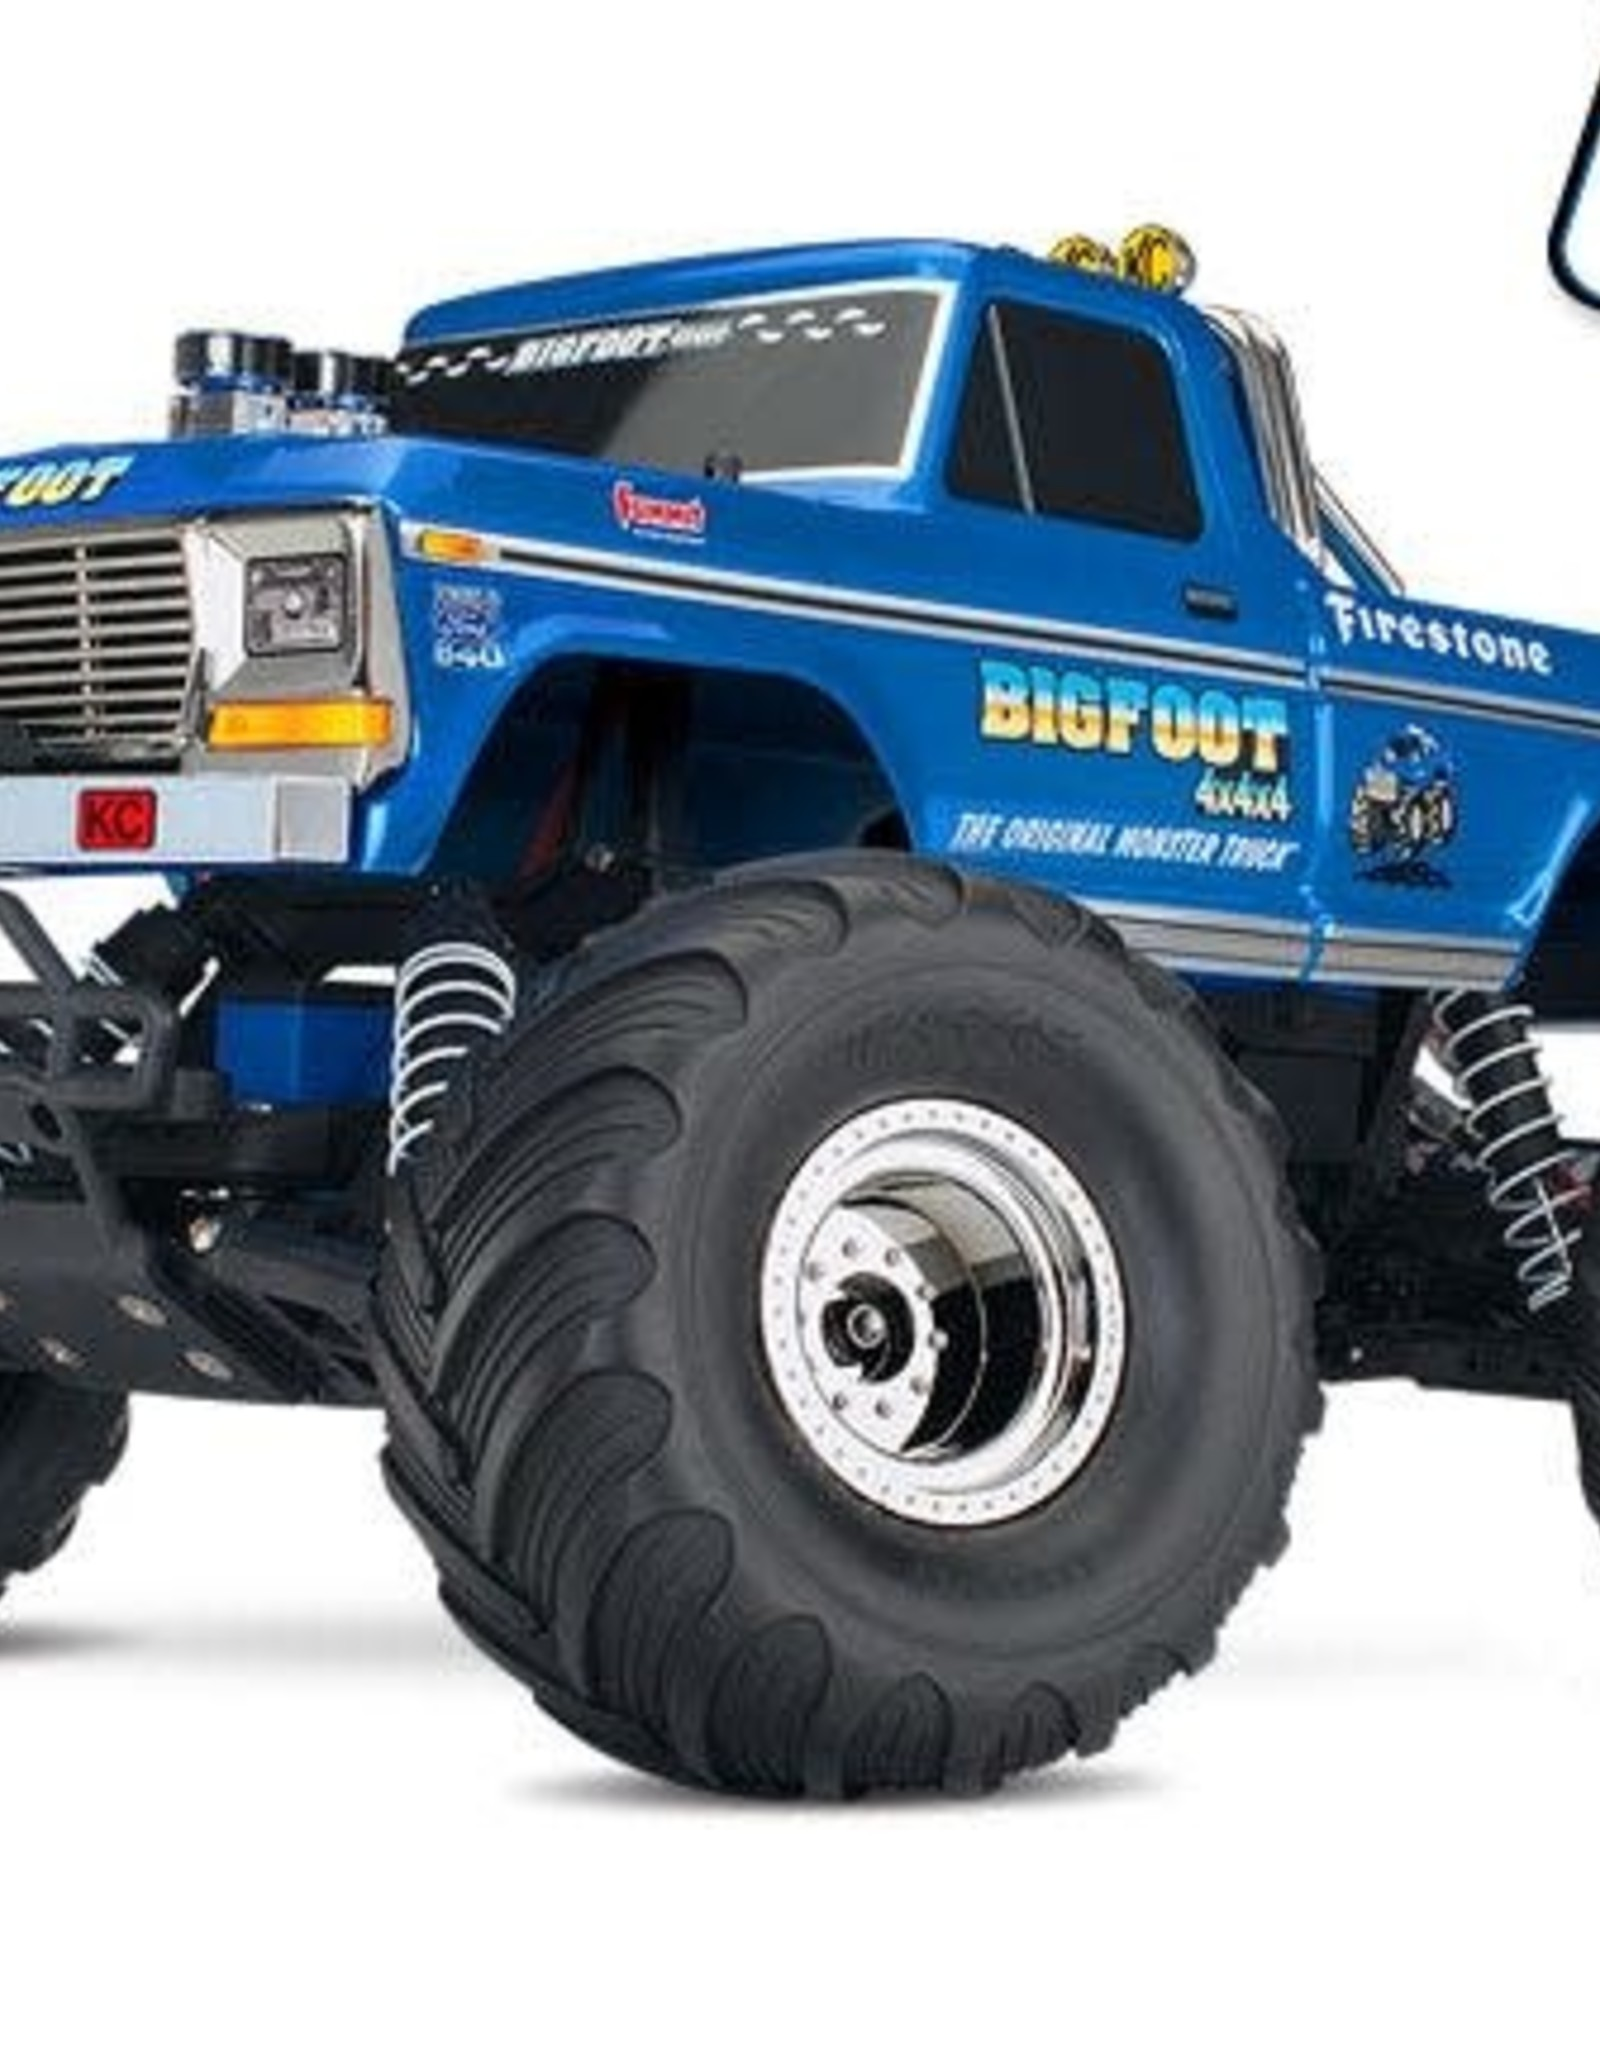 TRAXXAS Stampede BIGFOOT, CLASSIC